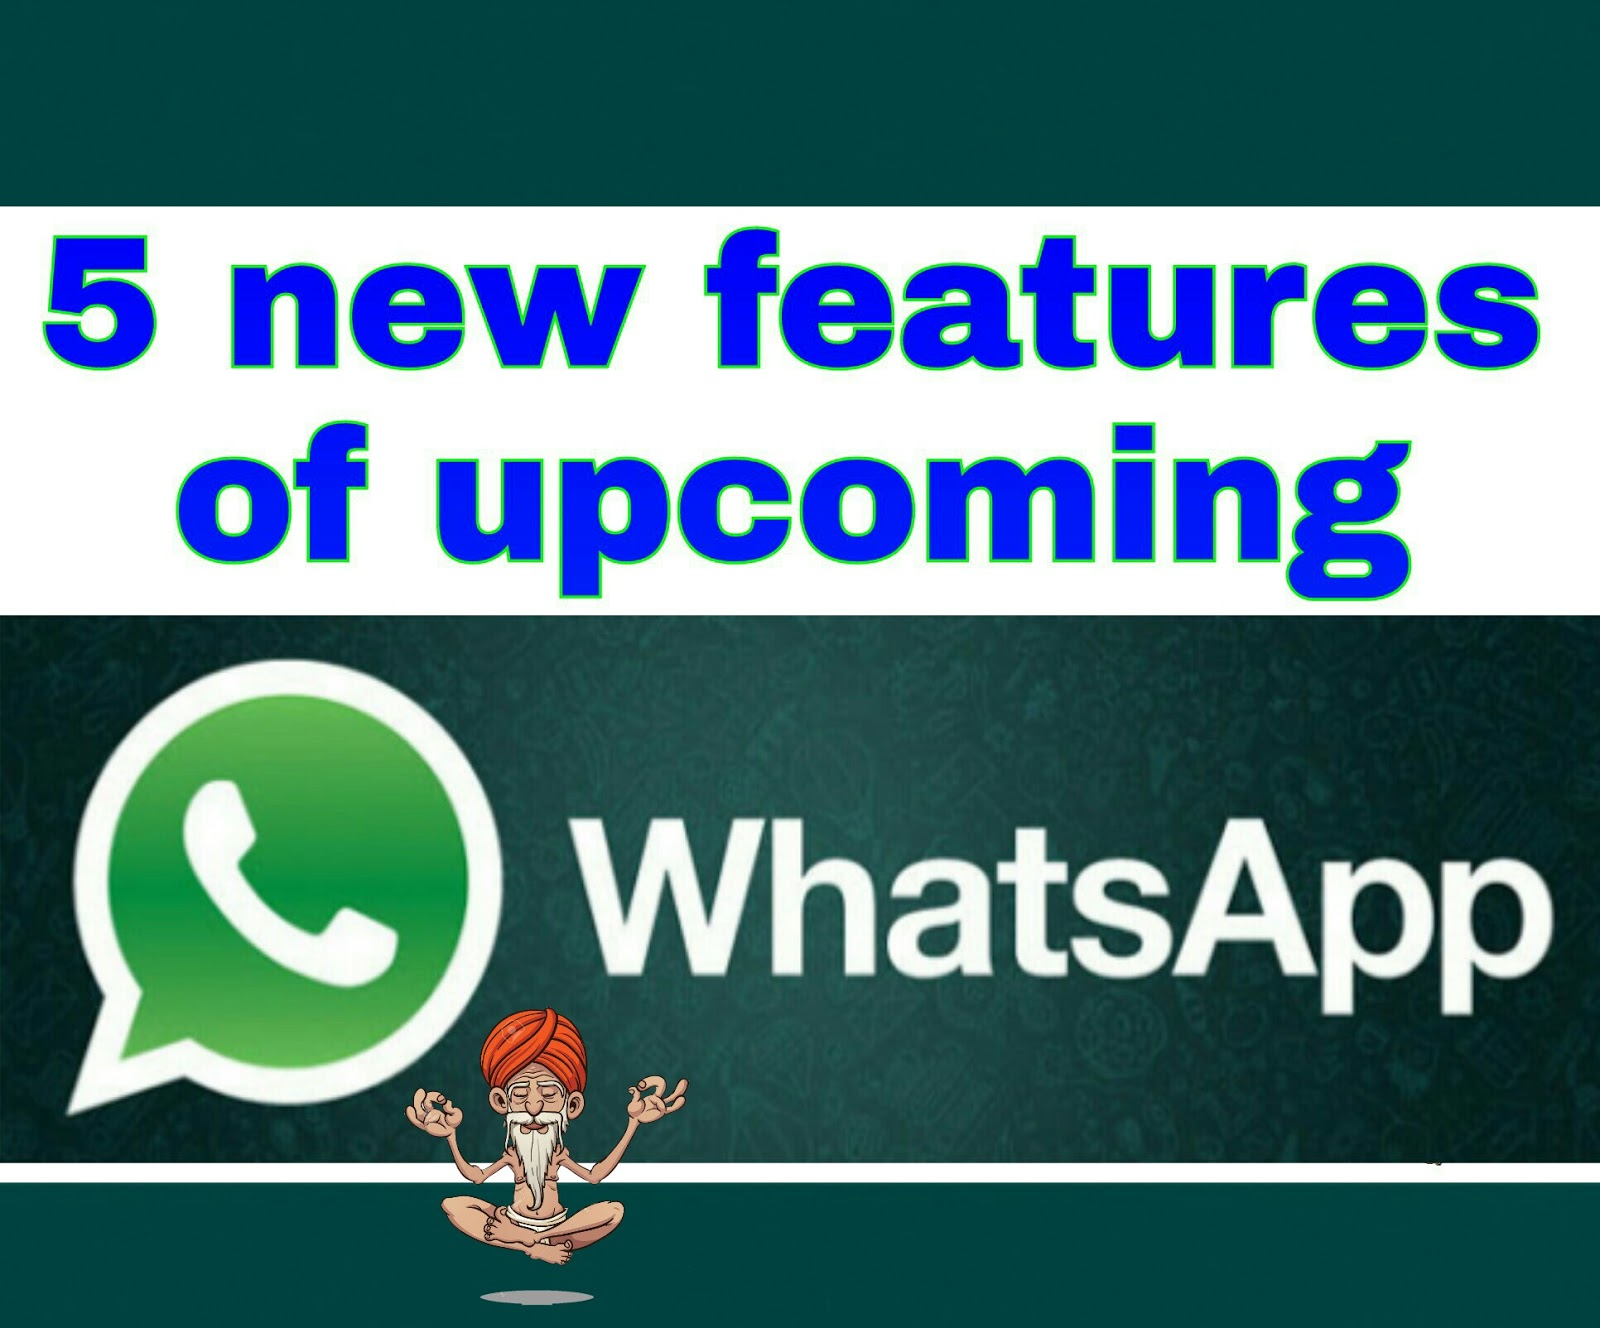 5 new features of WhatsApp